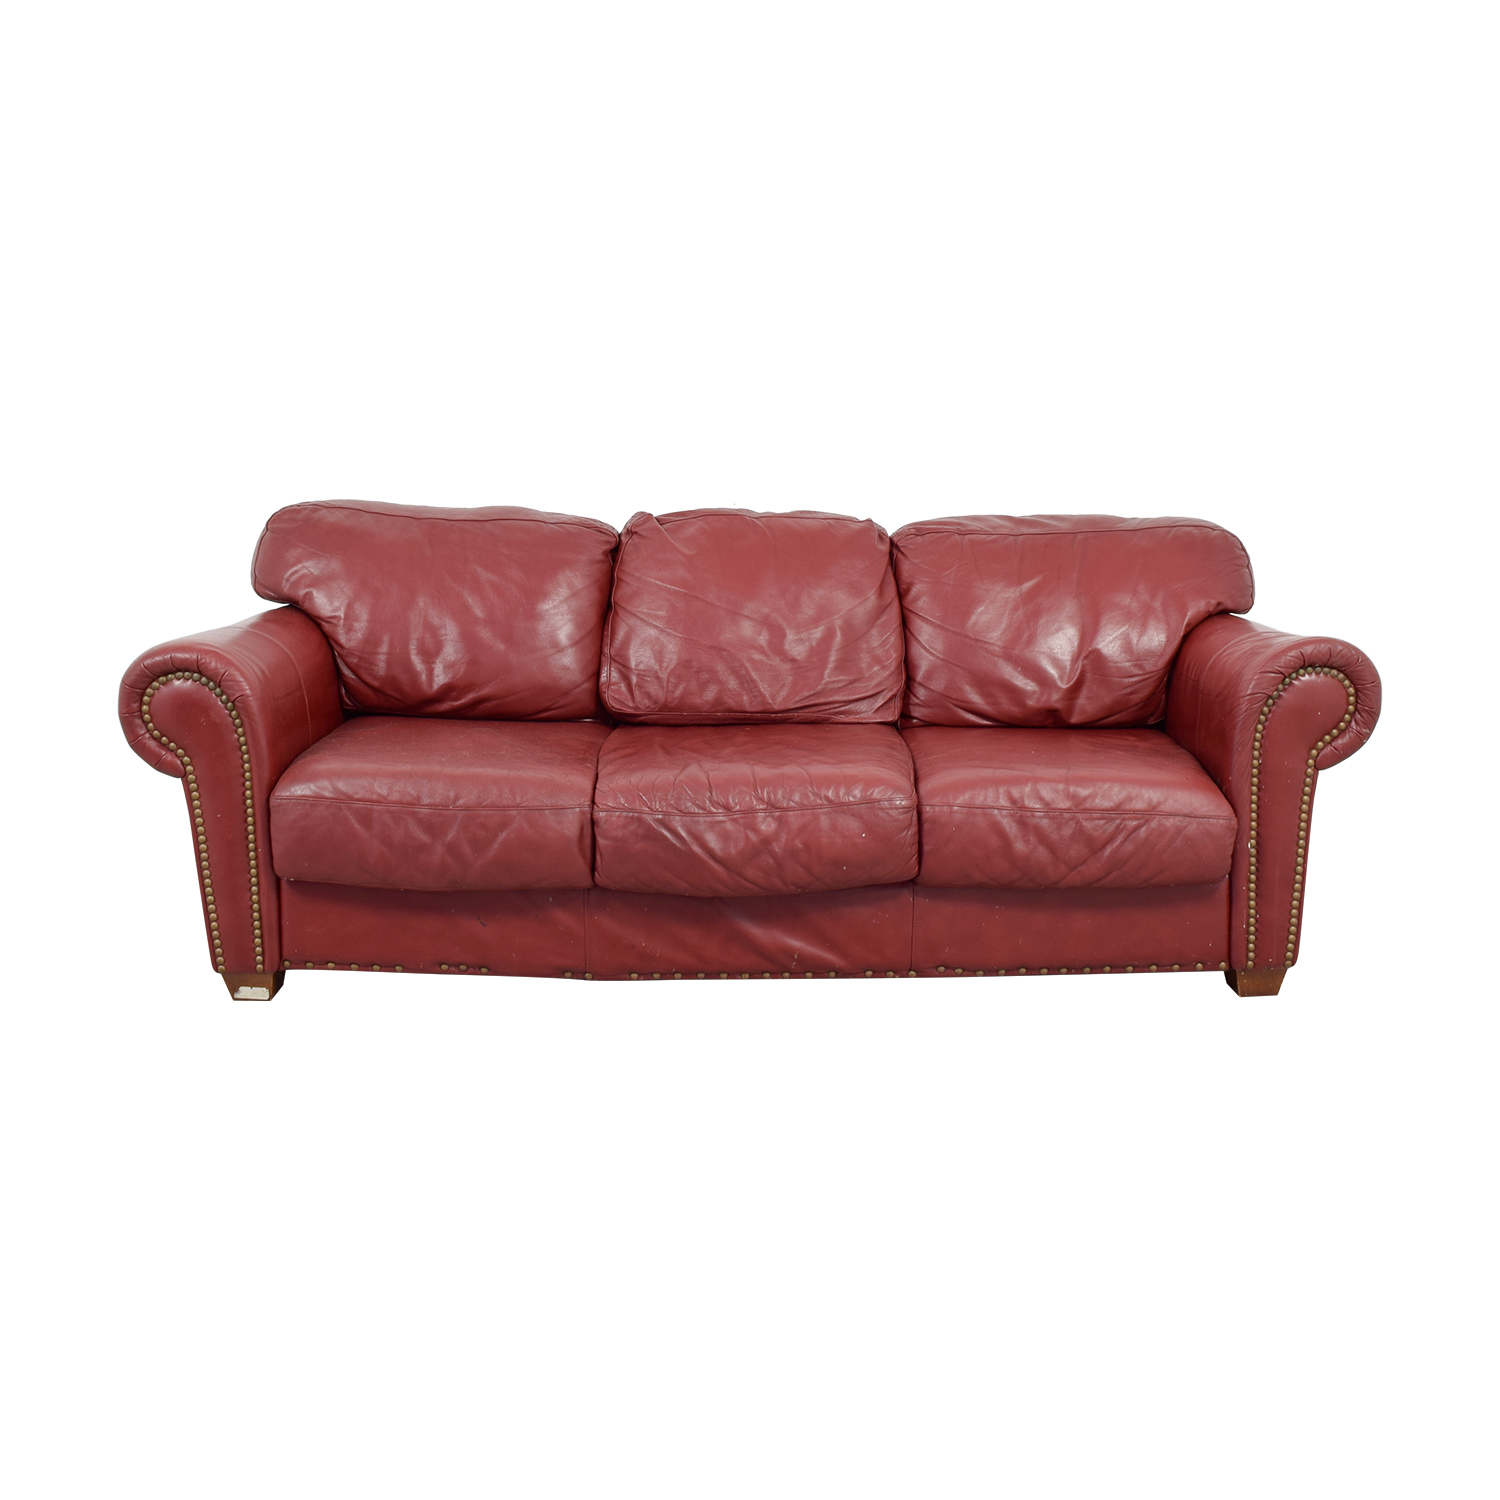 Nailhead Burgundy Leather Three-Cushion Sofa discount